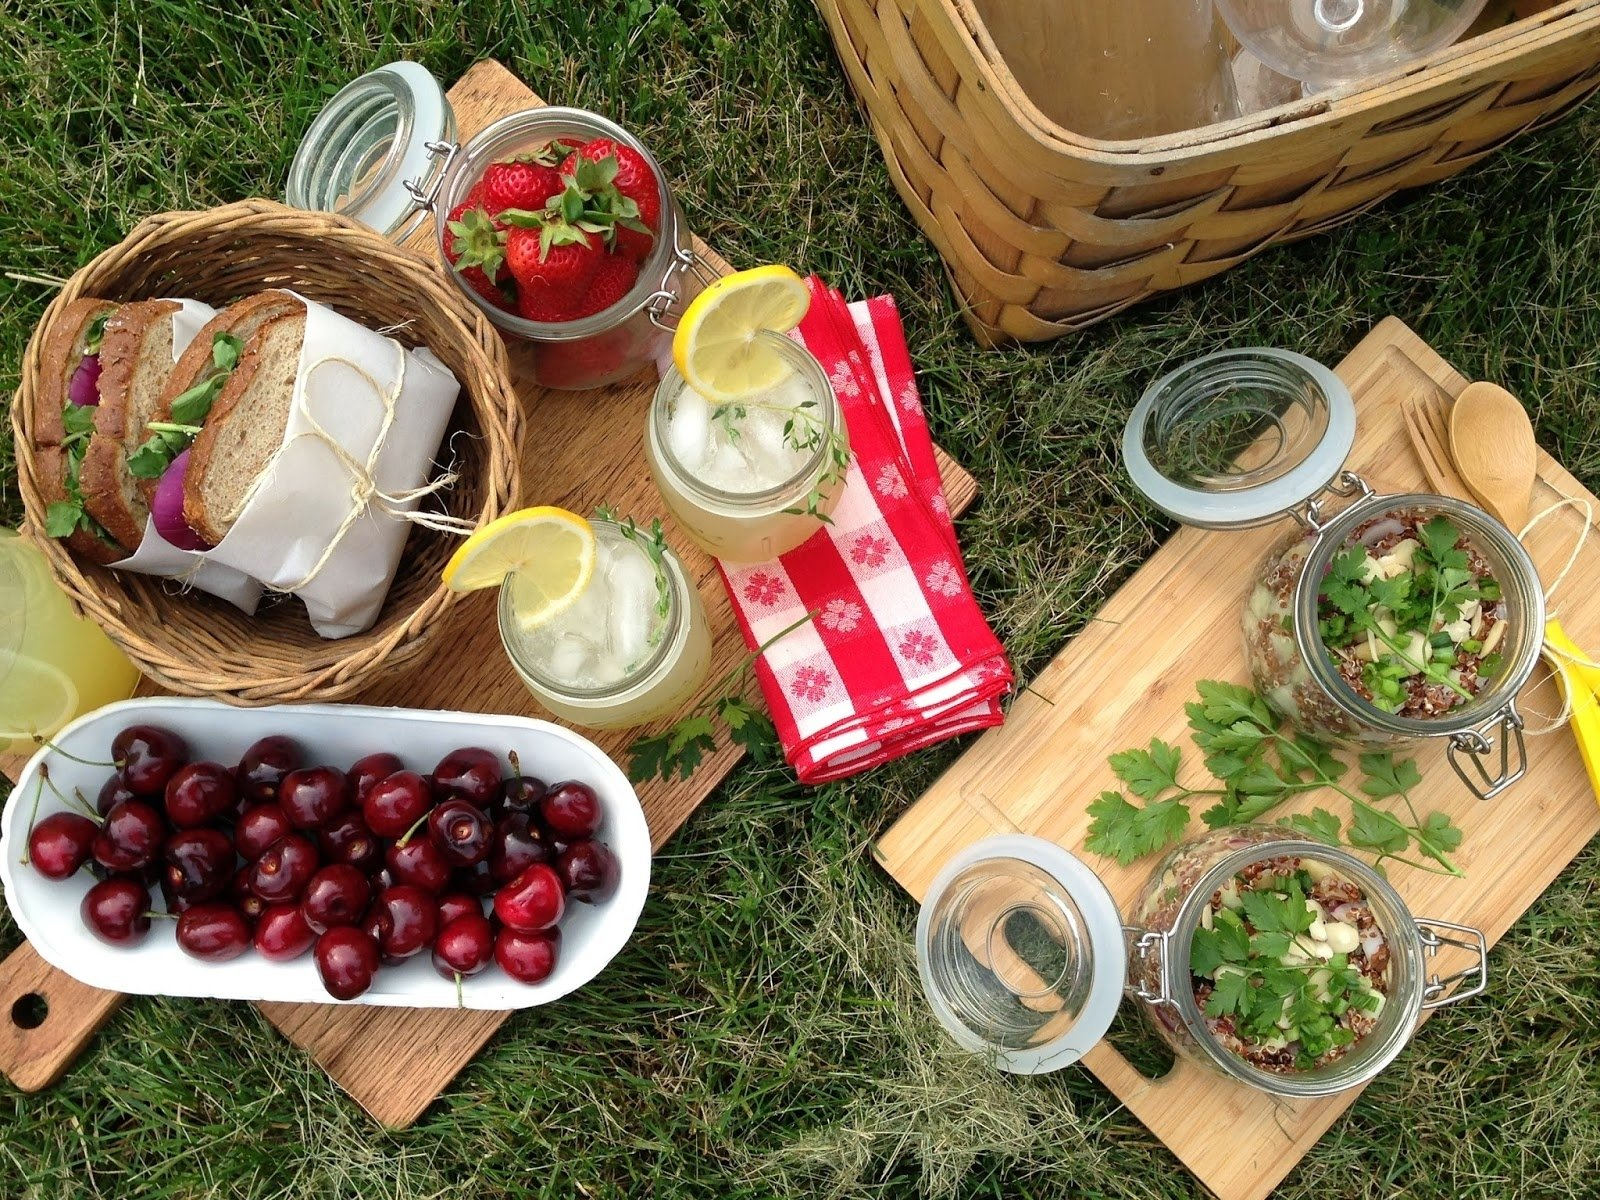 10 gorgeous picnic food ideas for two